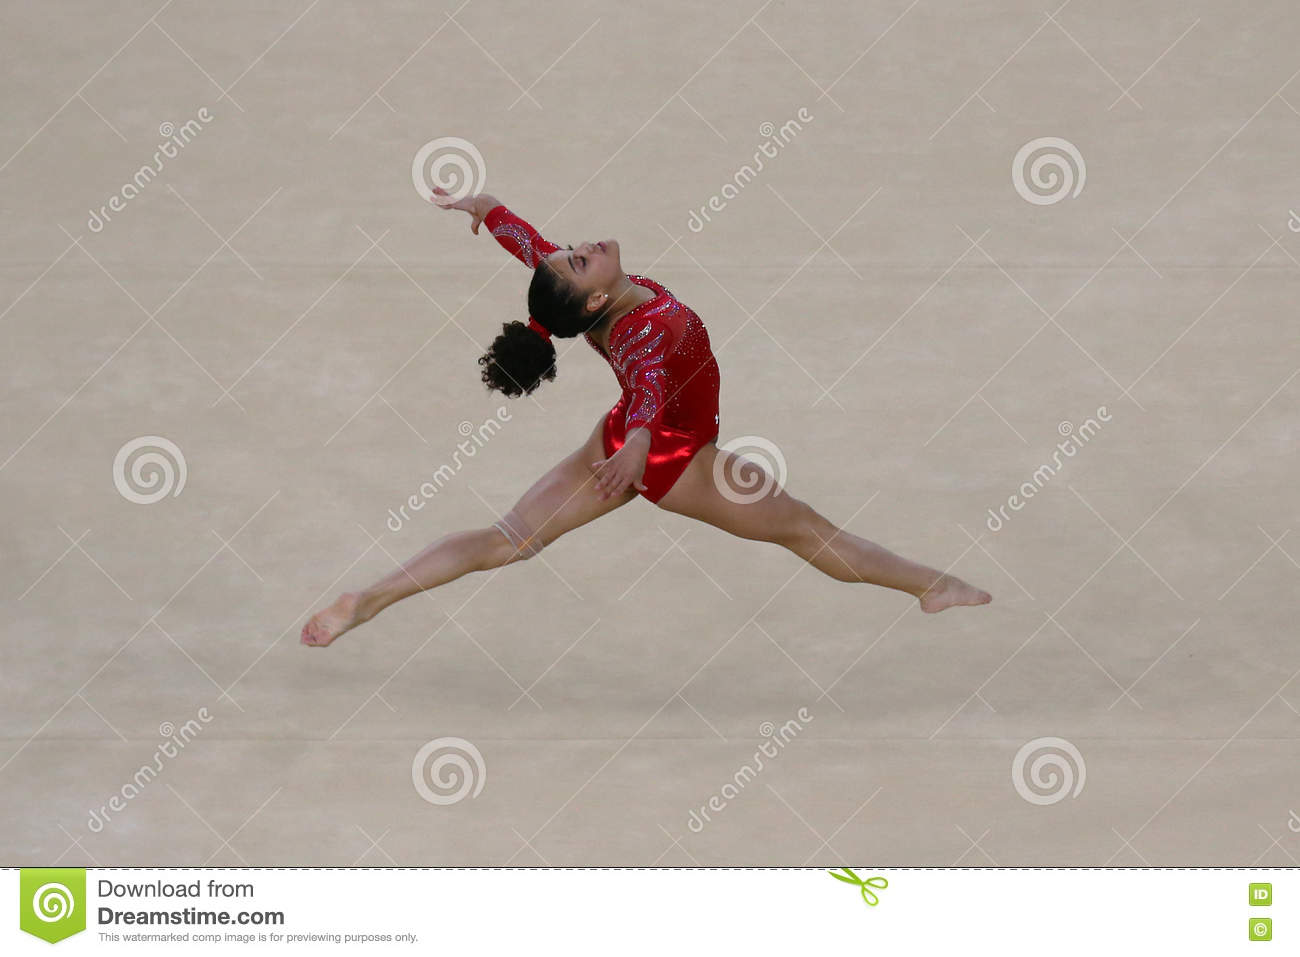 Floor Gymnastics Olympics In Olympic Champion Laurie Hernandez Of United States During An Artistic Gymnastics Floor Exercise Training Session For Champion Of During An